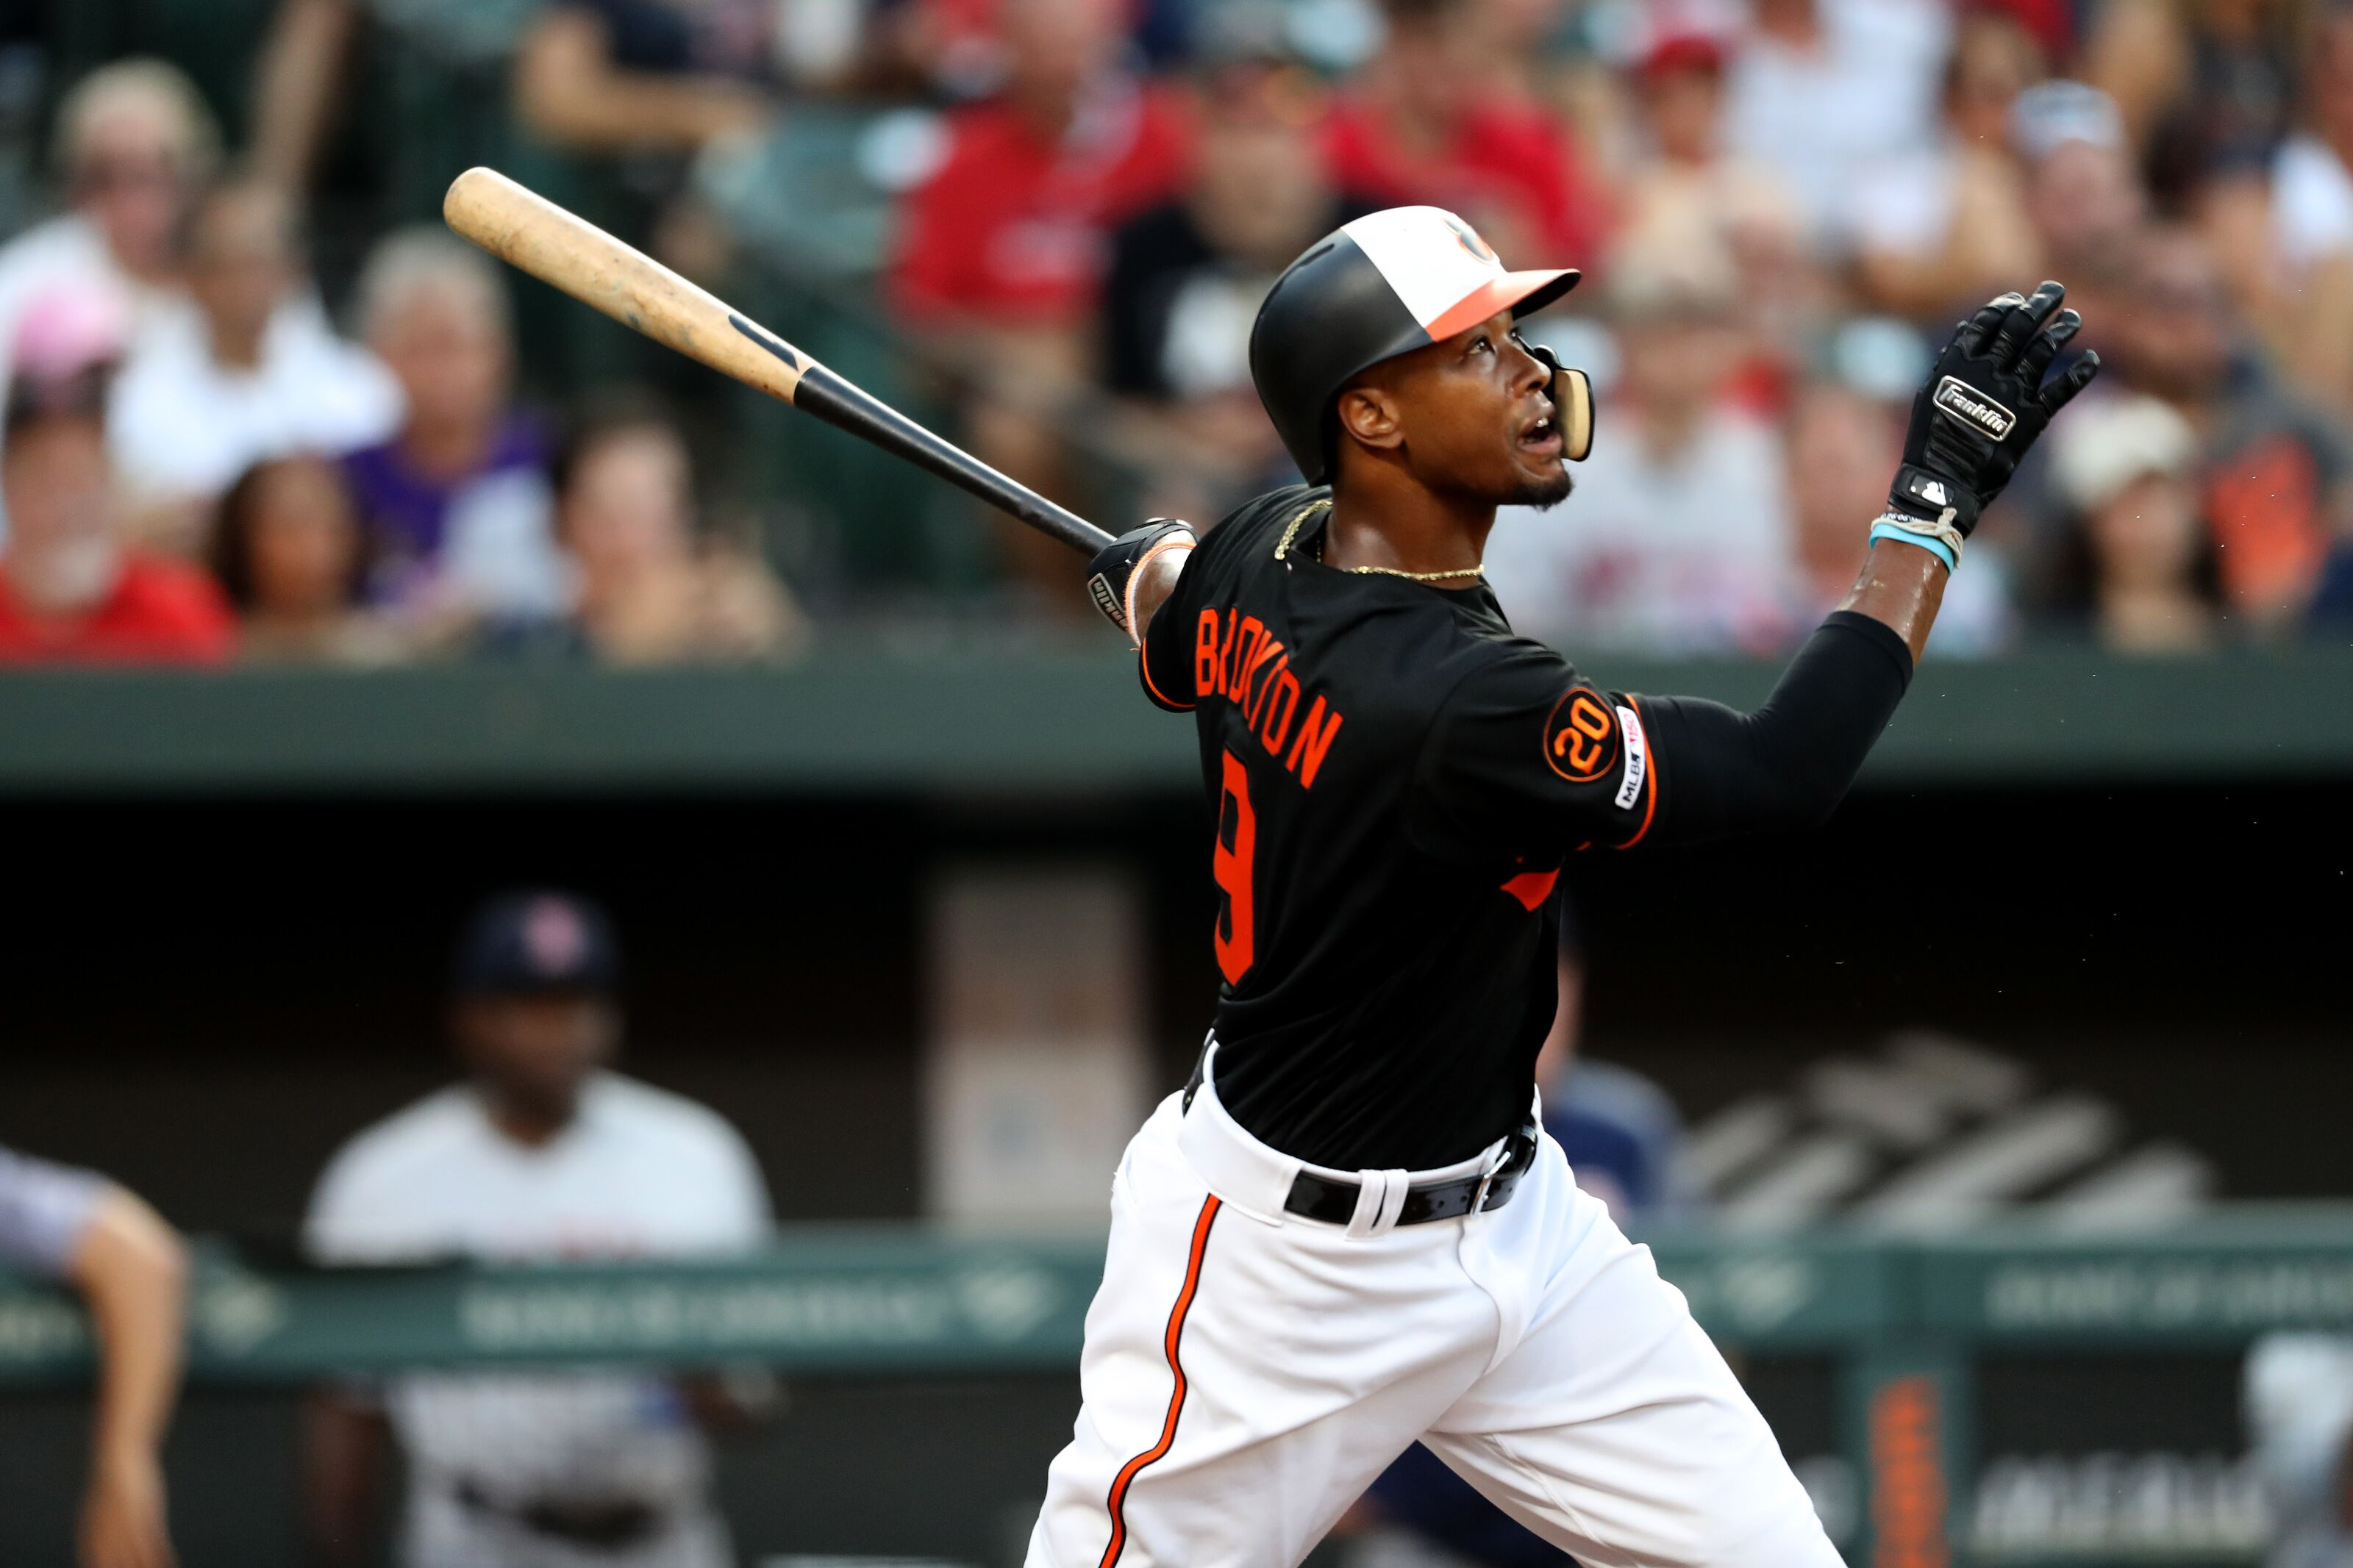 Baltimore Orioles: Keon Broxton's Quick Stay In Baltimore Comes To An End